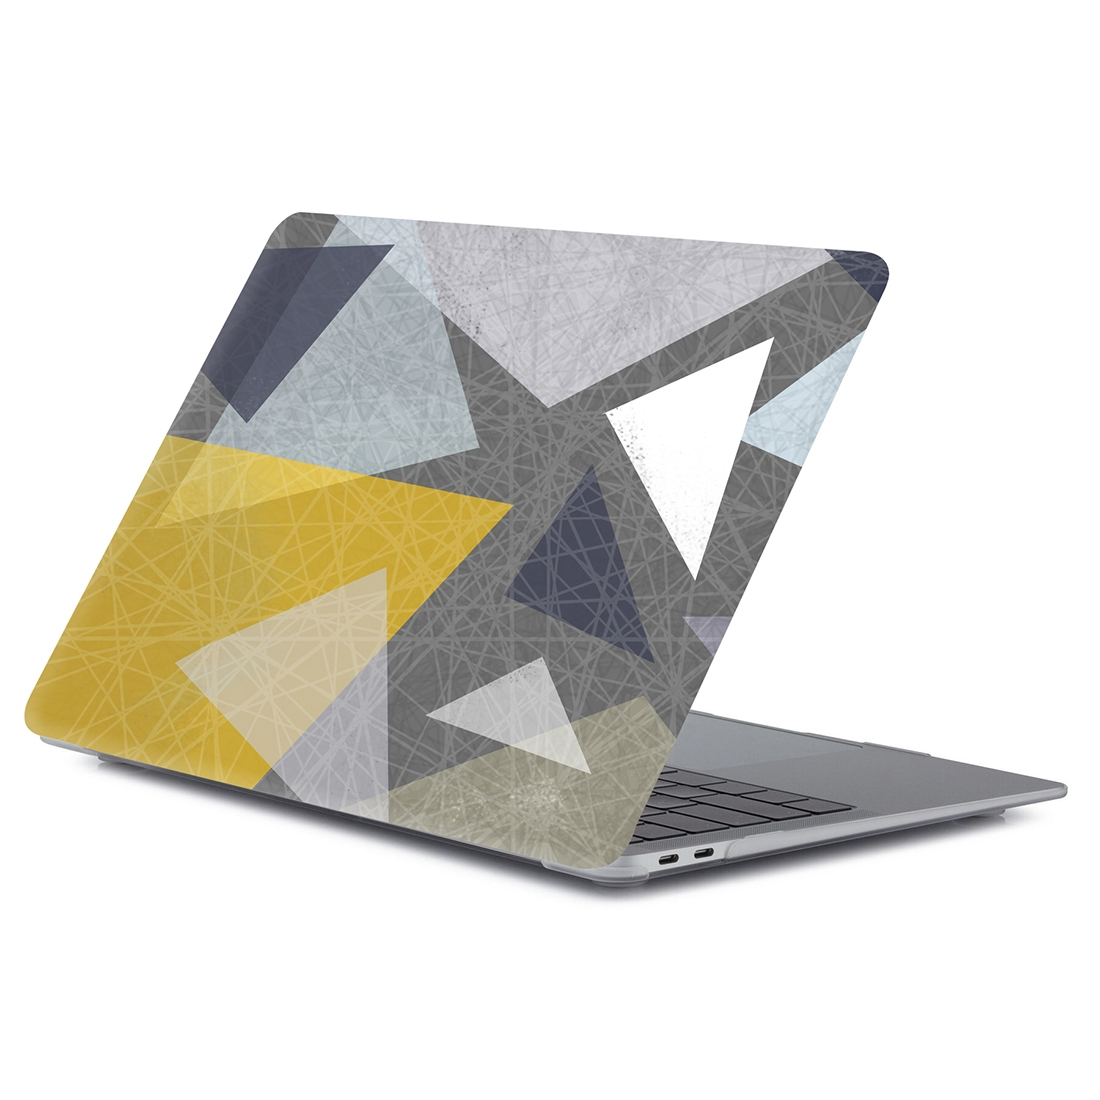 Printing Matte Laptop Protective Case for MacBook Air 11.6 inch A1465 (2012 - 2015) / A1370 (2010 - 2011) (RS-045)